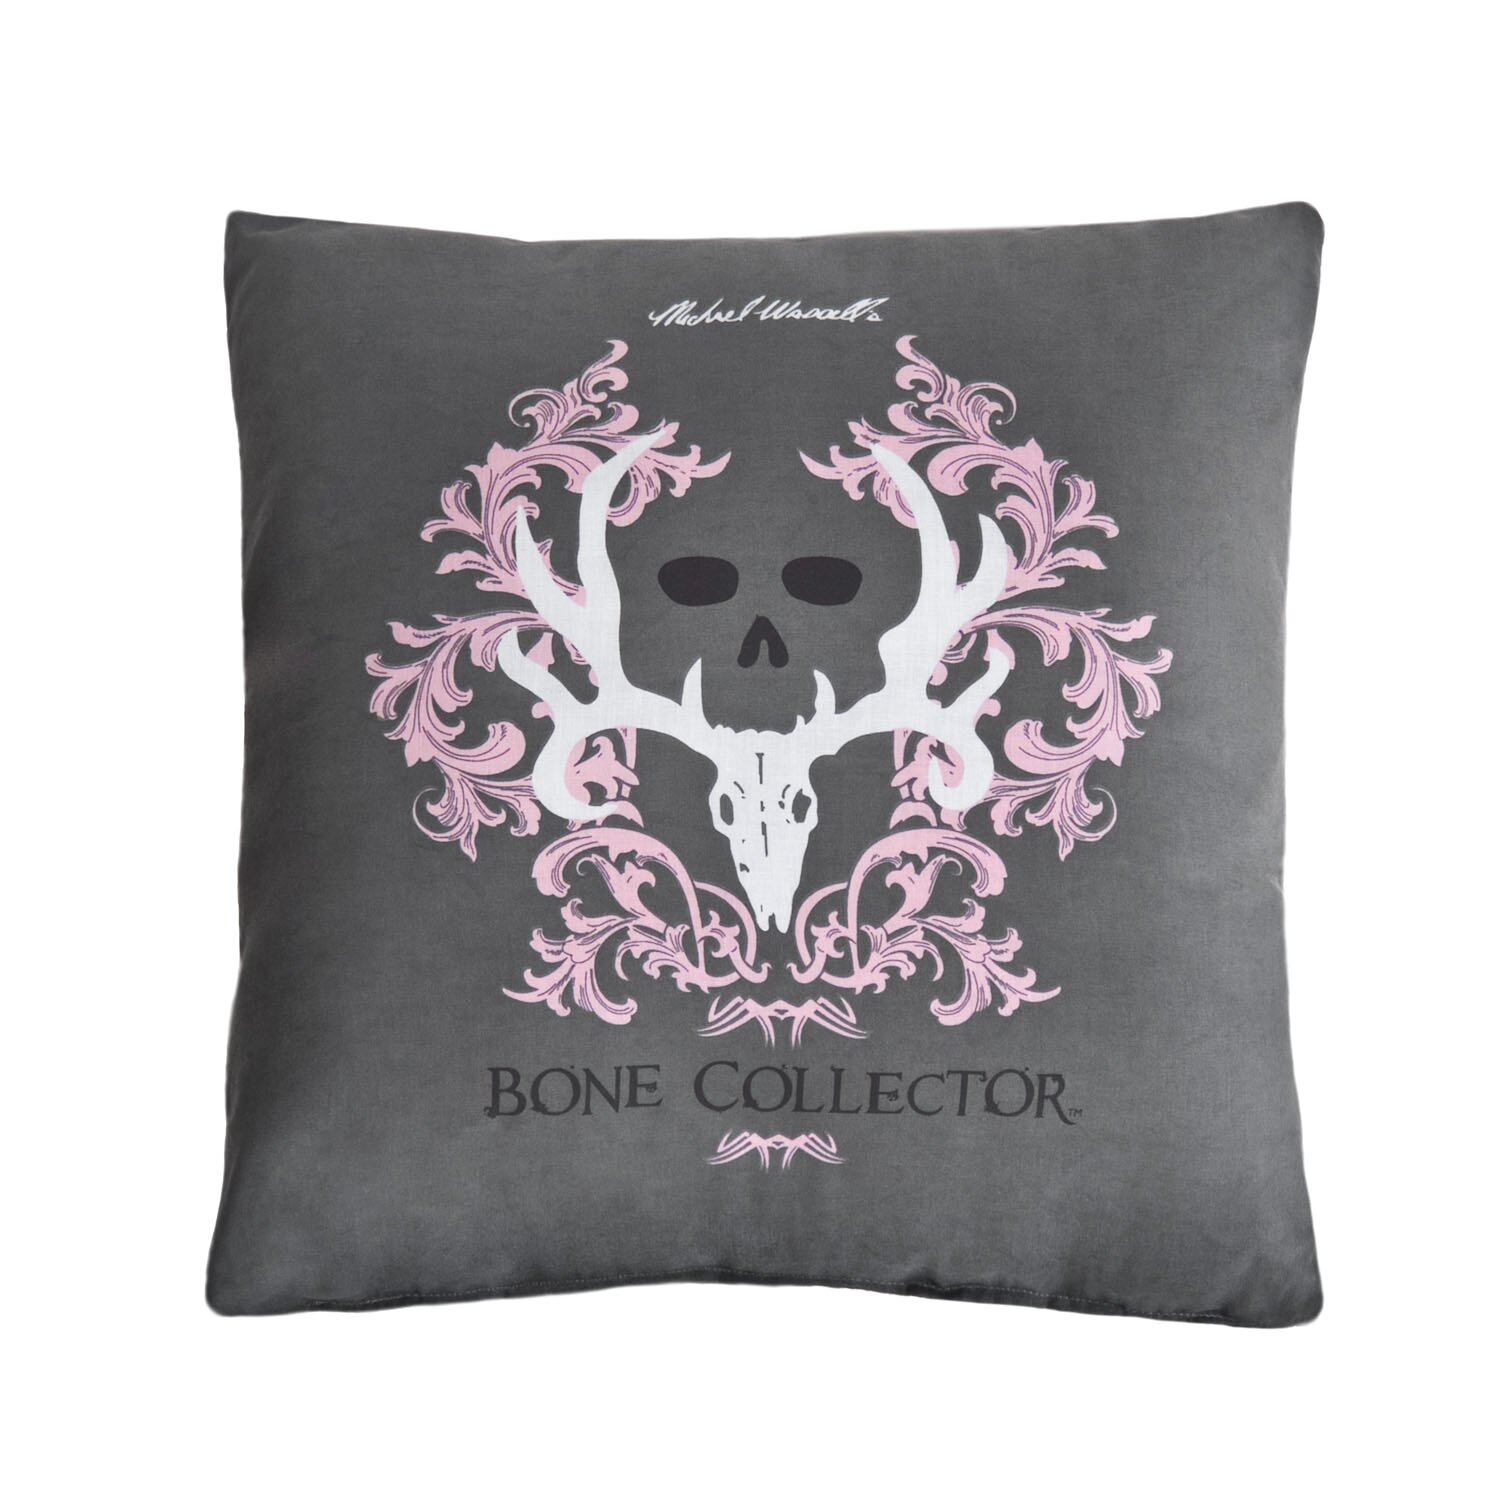 Bone Collector Bone Collector Comforter Collection